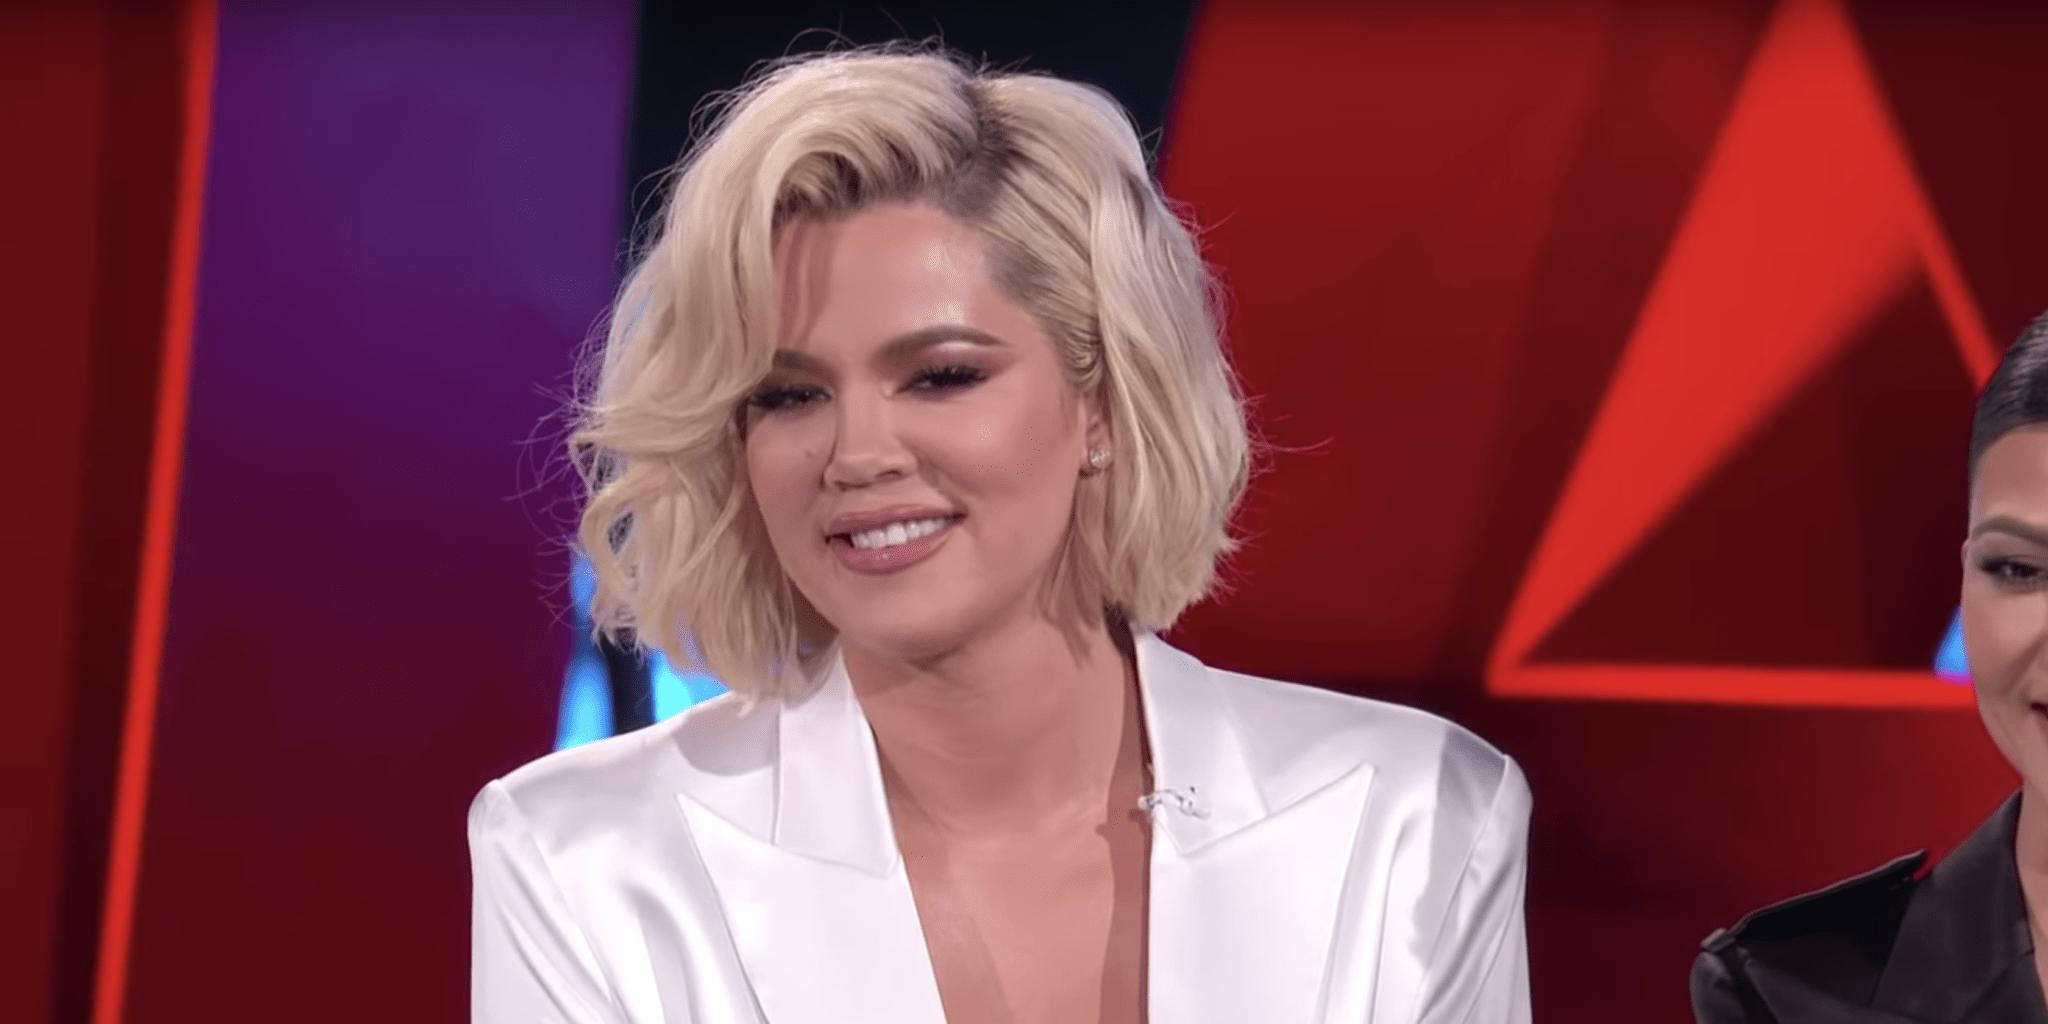 Khloe Kardashian Puts Her Toned Booty On Display In The Latest Video, But Fans Get To See Her Face Better And Say She Definitely Had A Nose Job